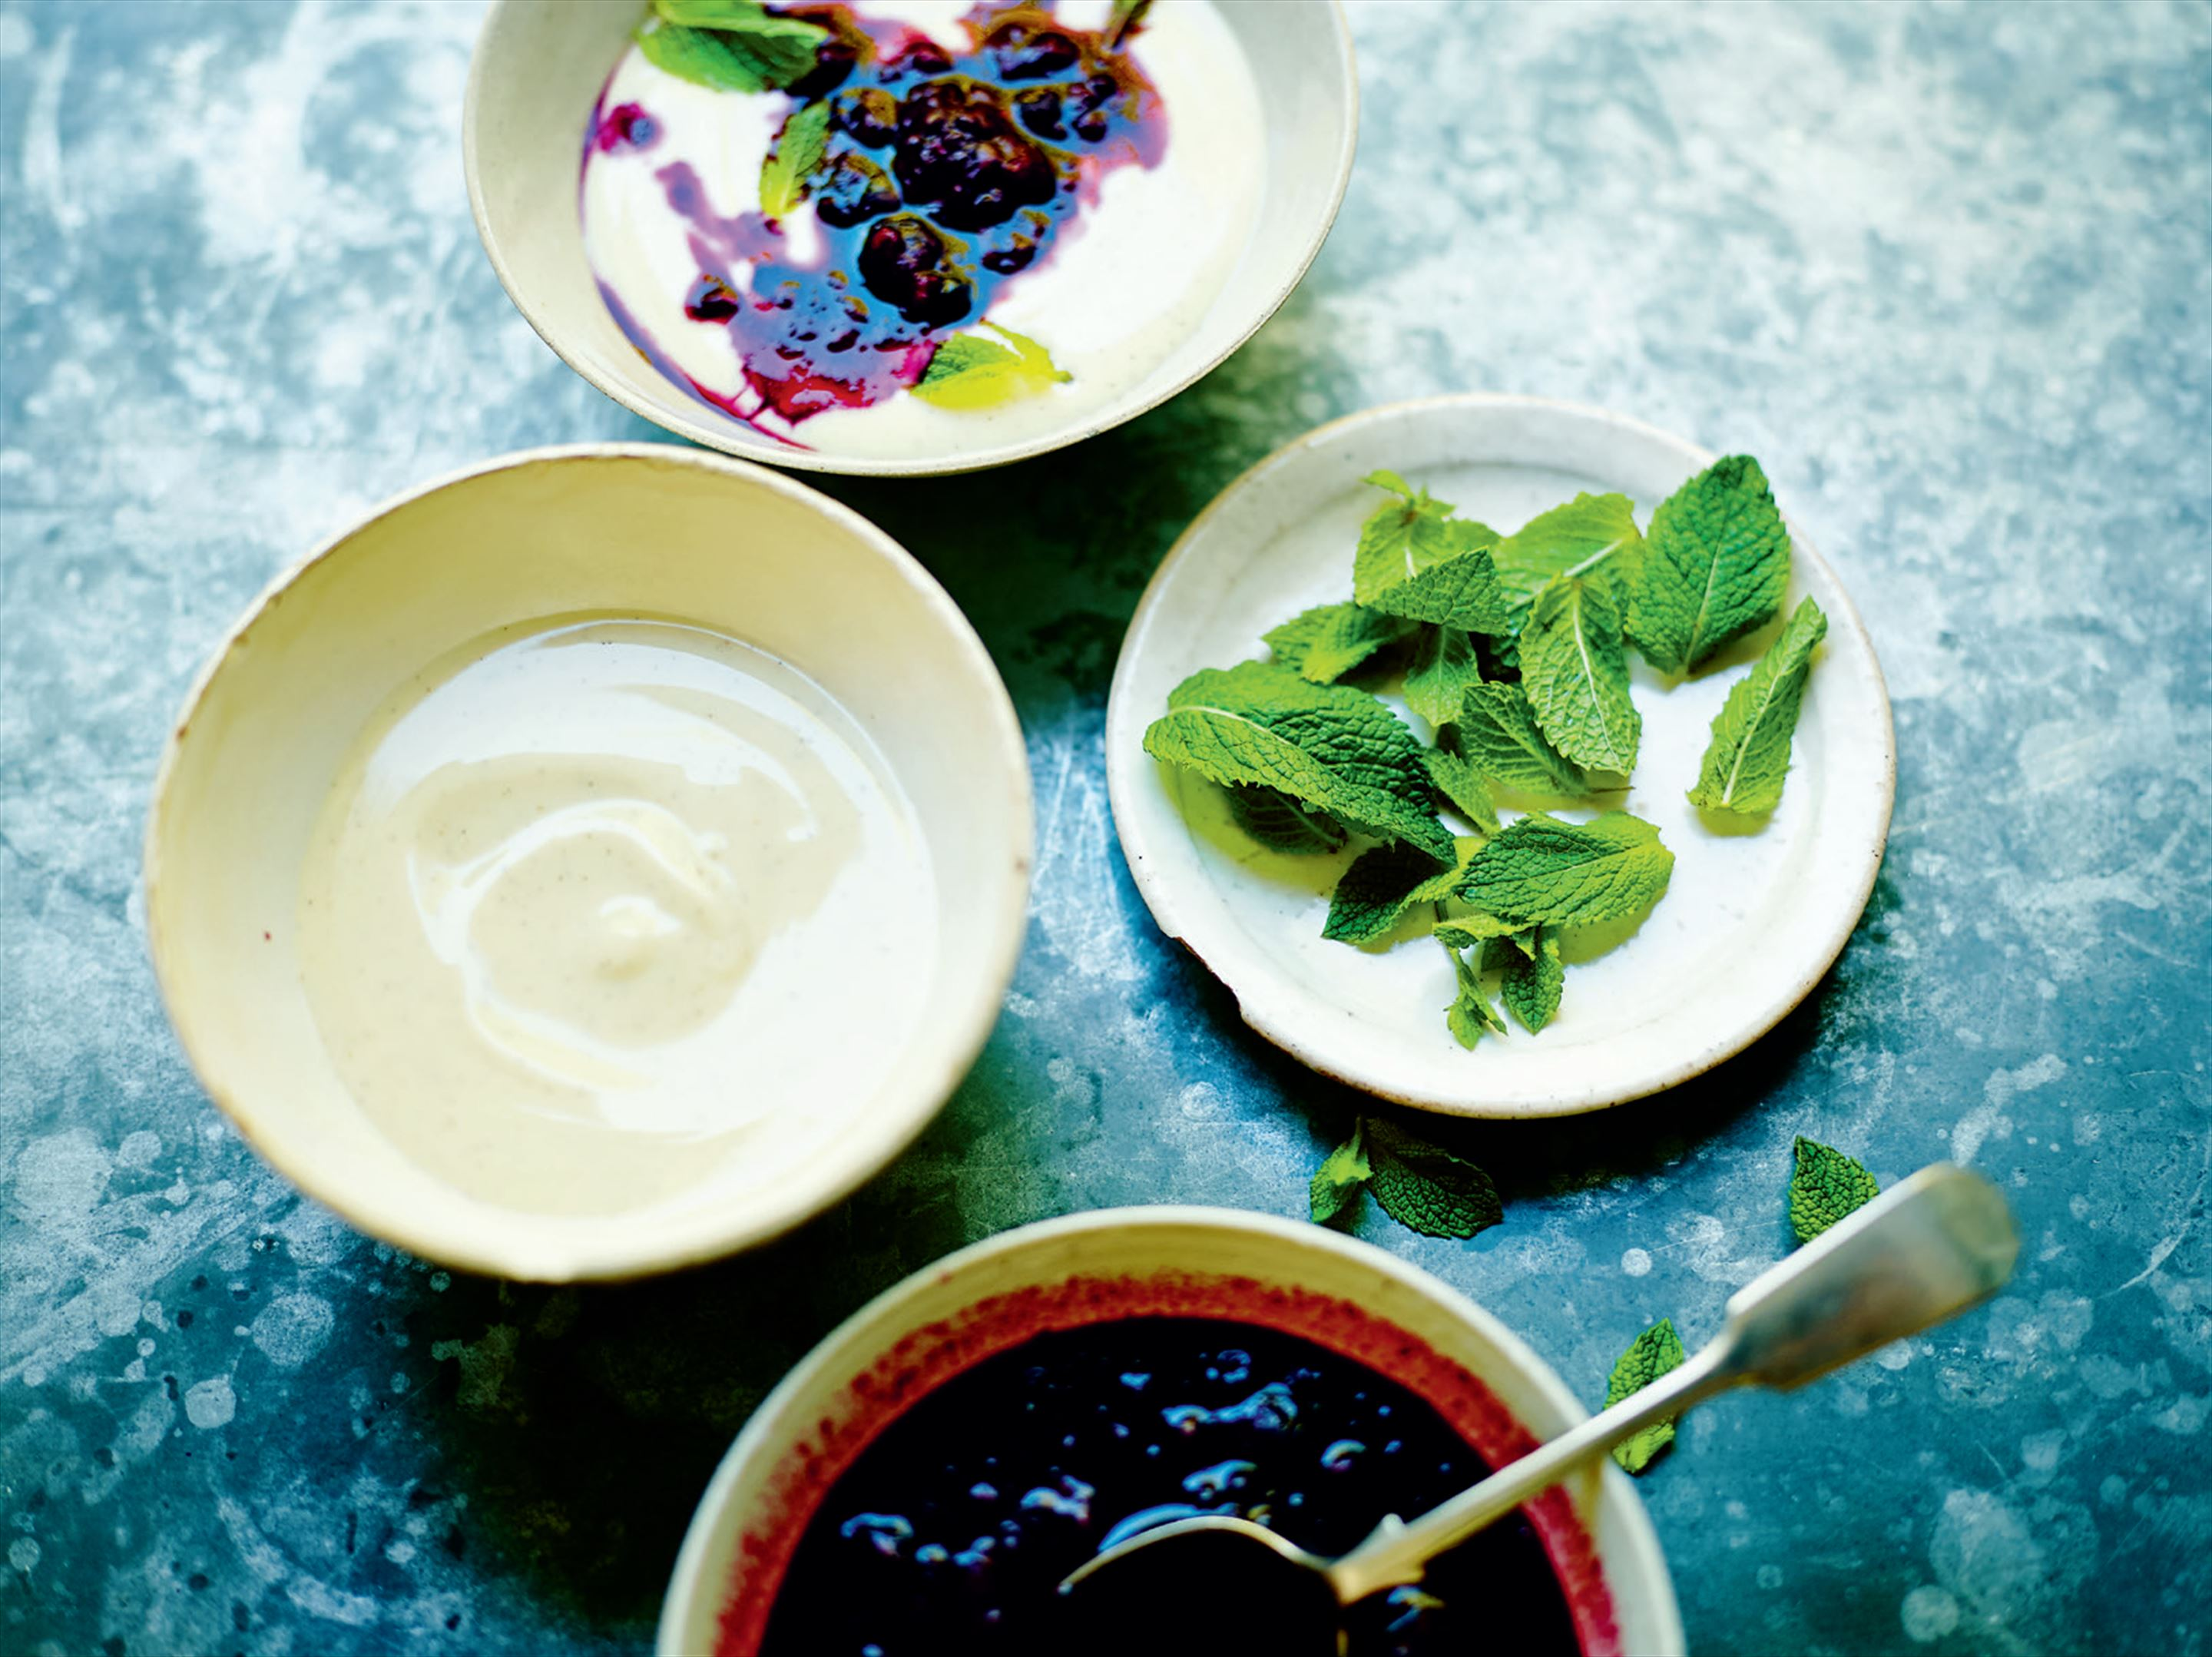 Vanilla yoghurt with warm berry compote